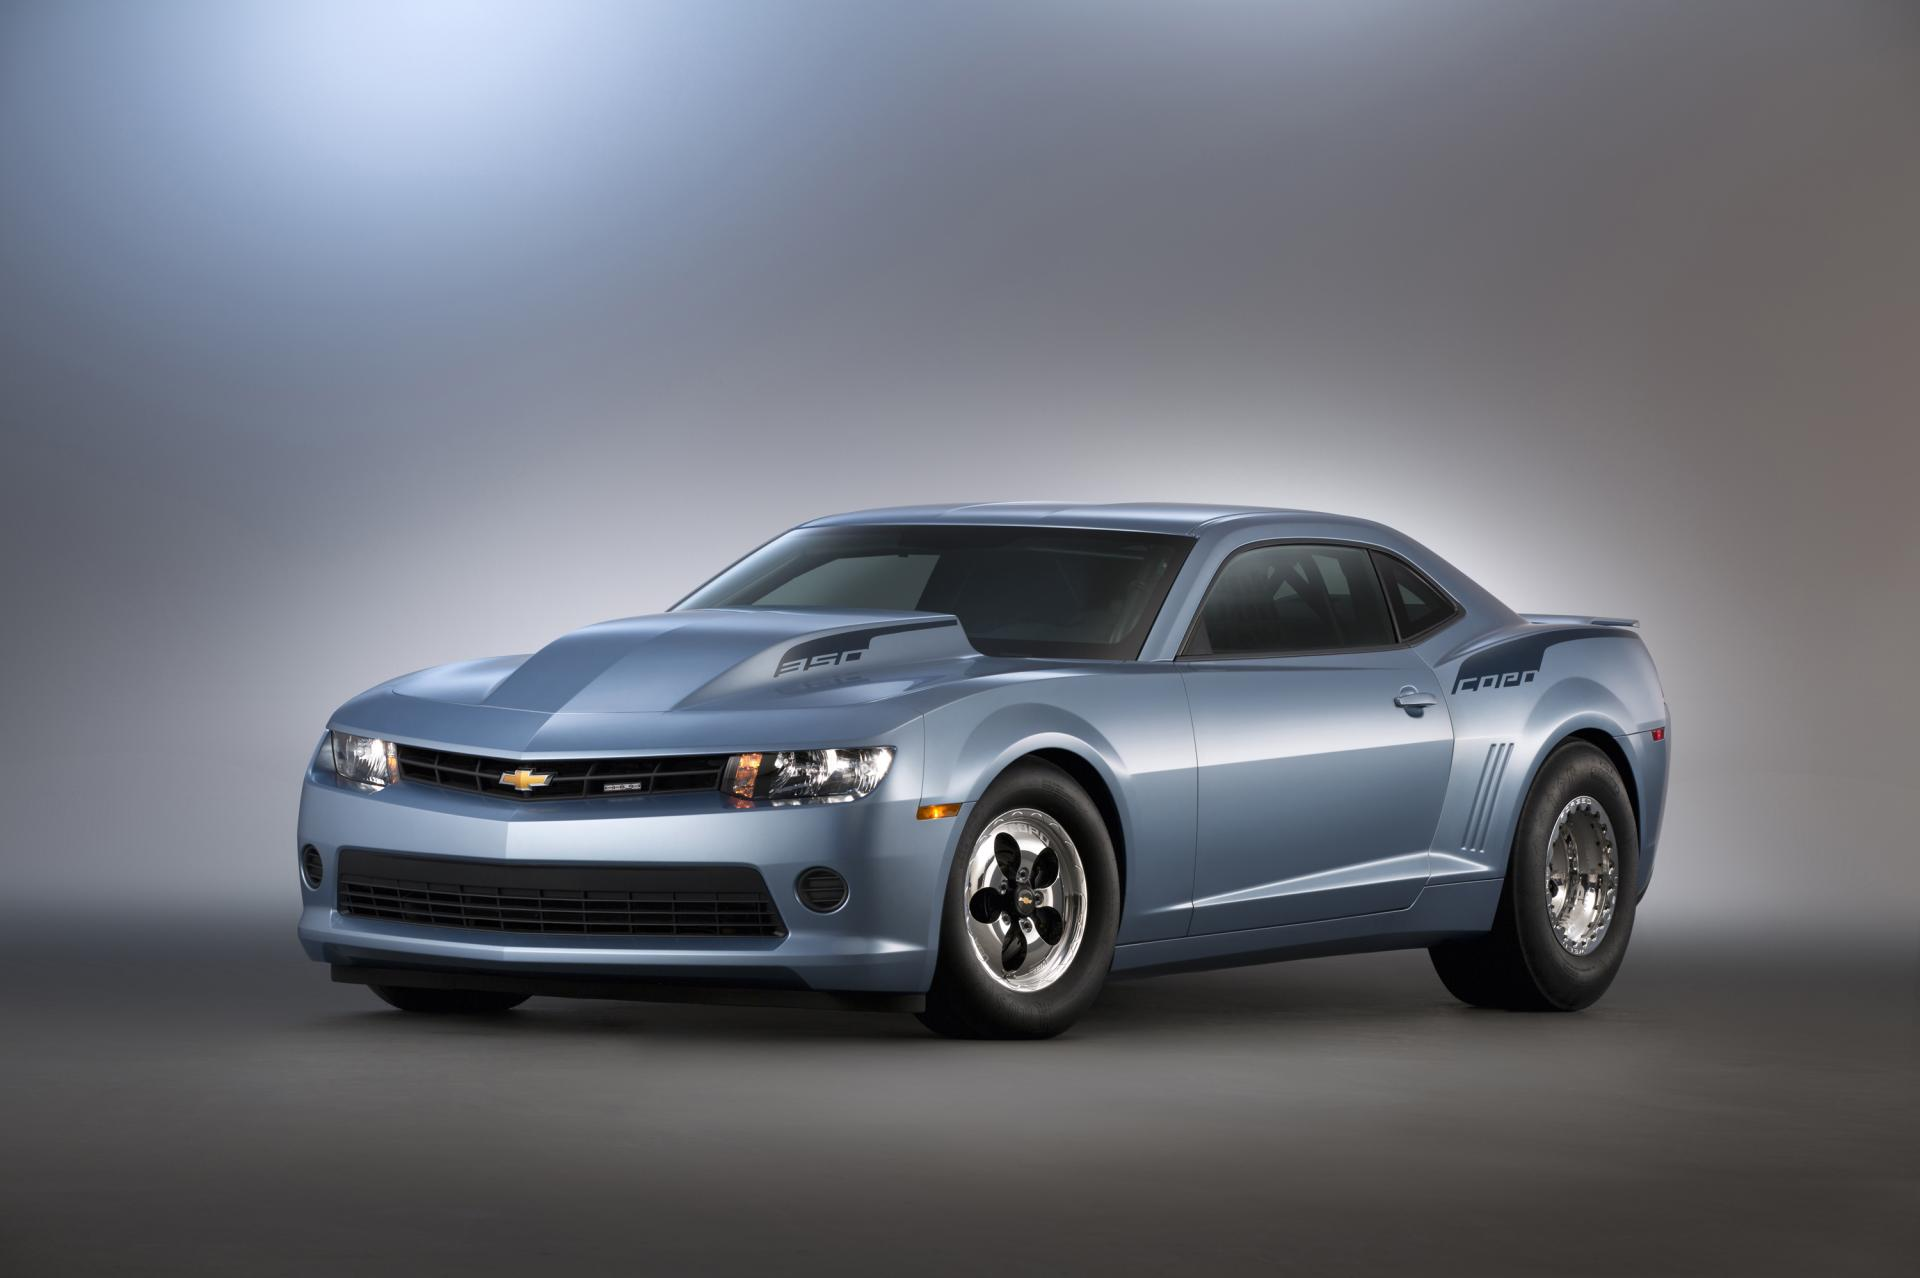 Chevrolet COPO Camaro pictures and wallpaper